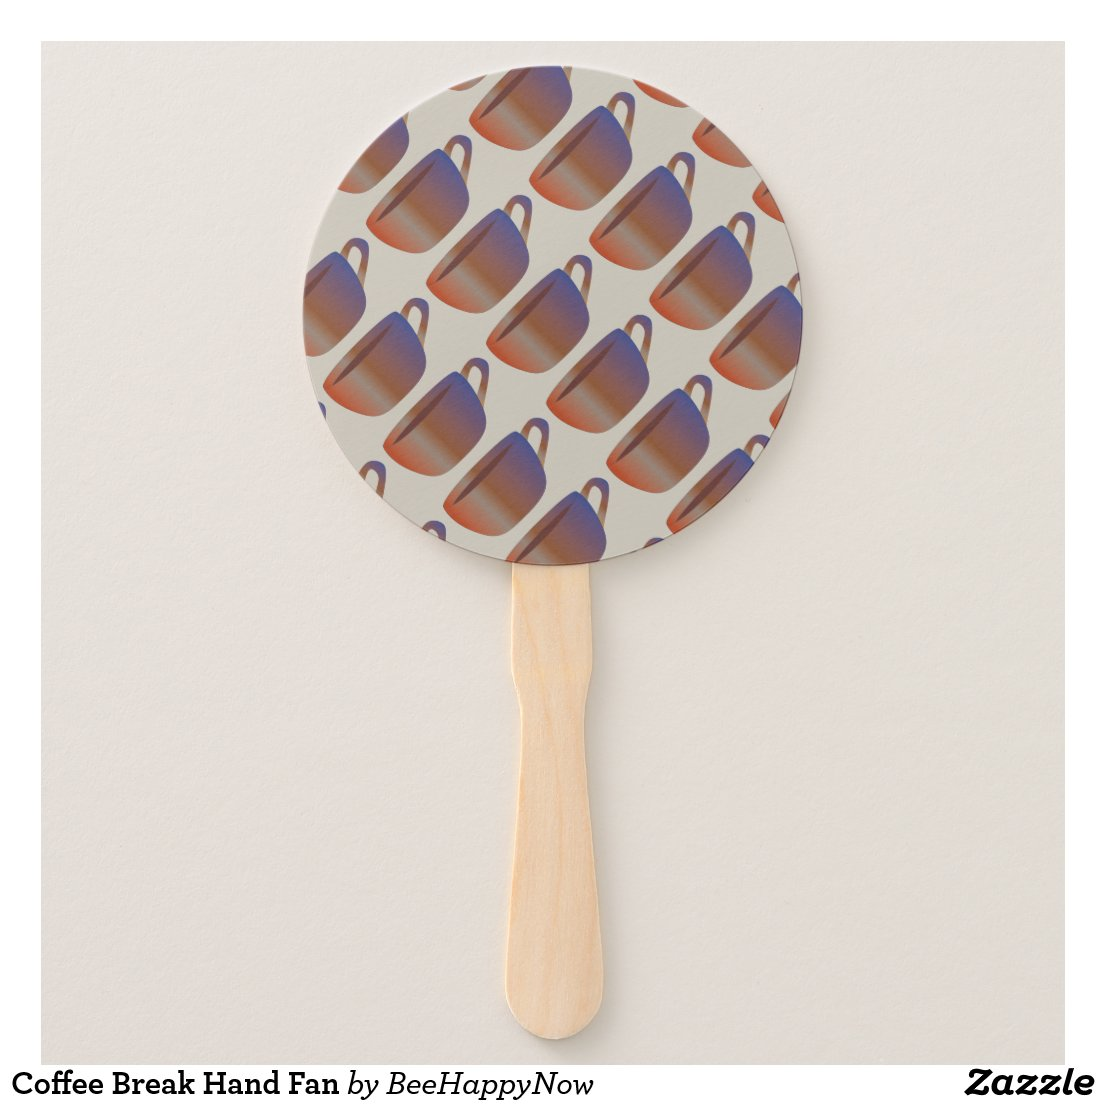 Coffee Break Hand Fan